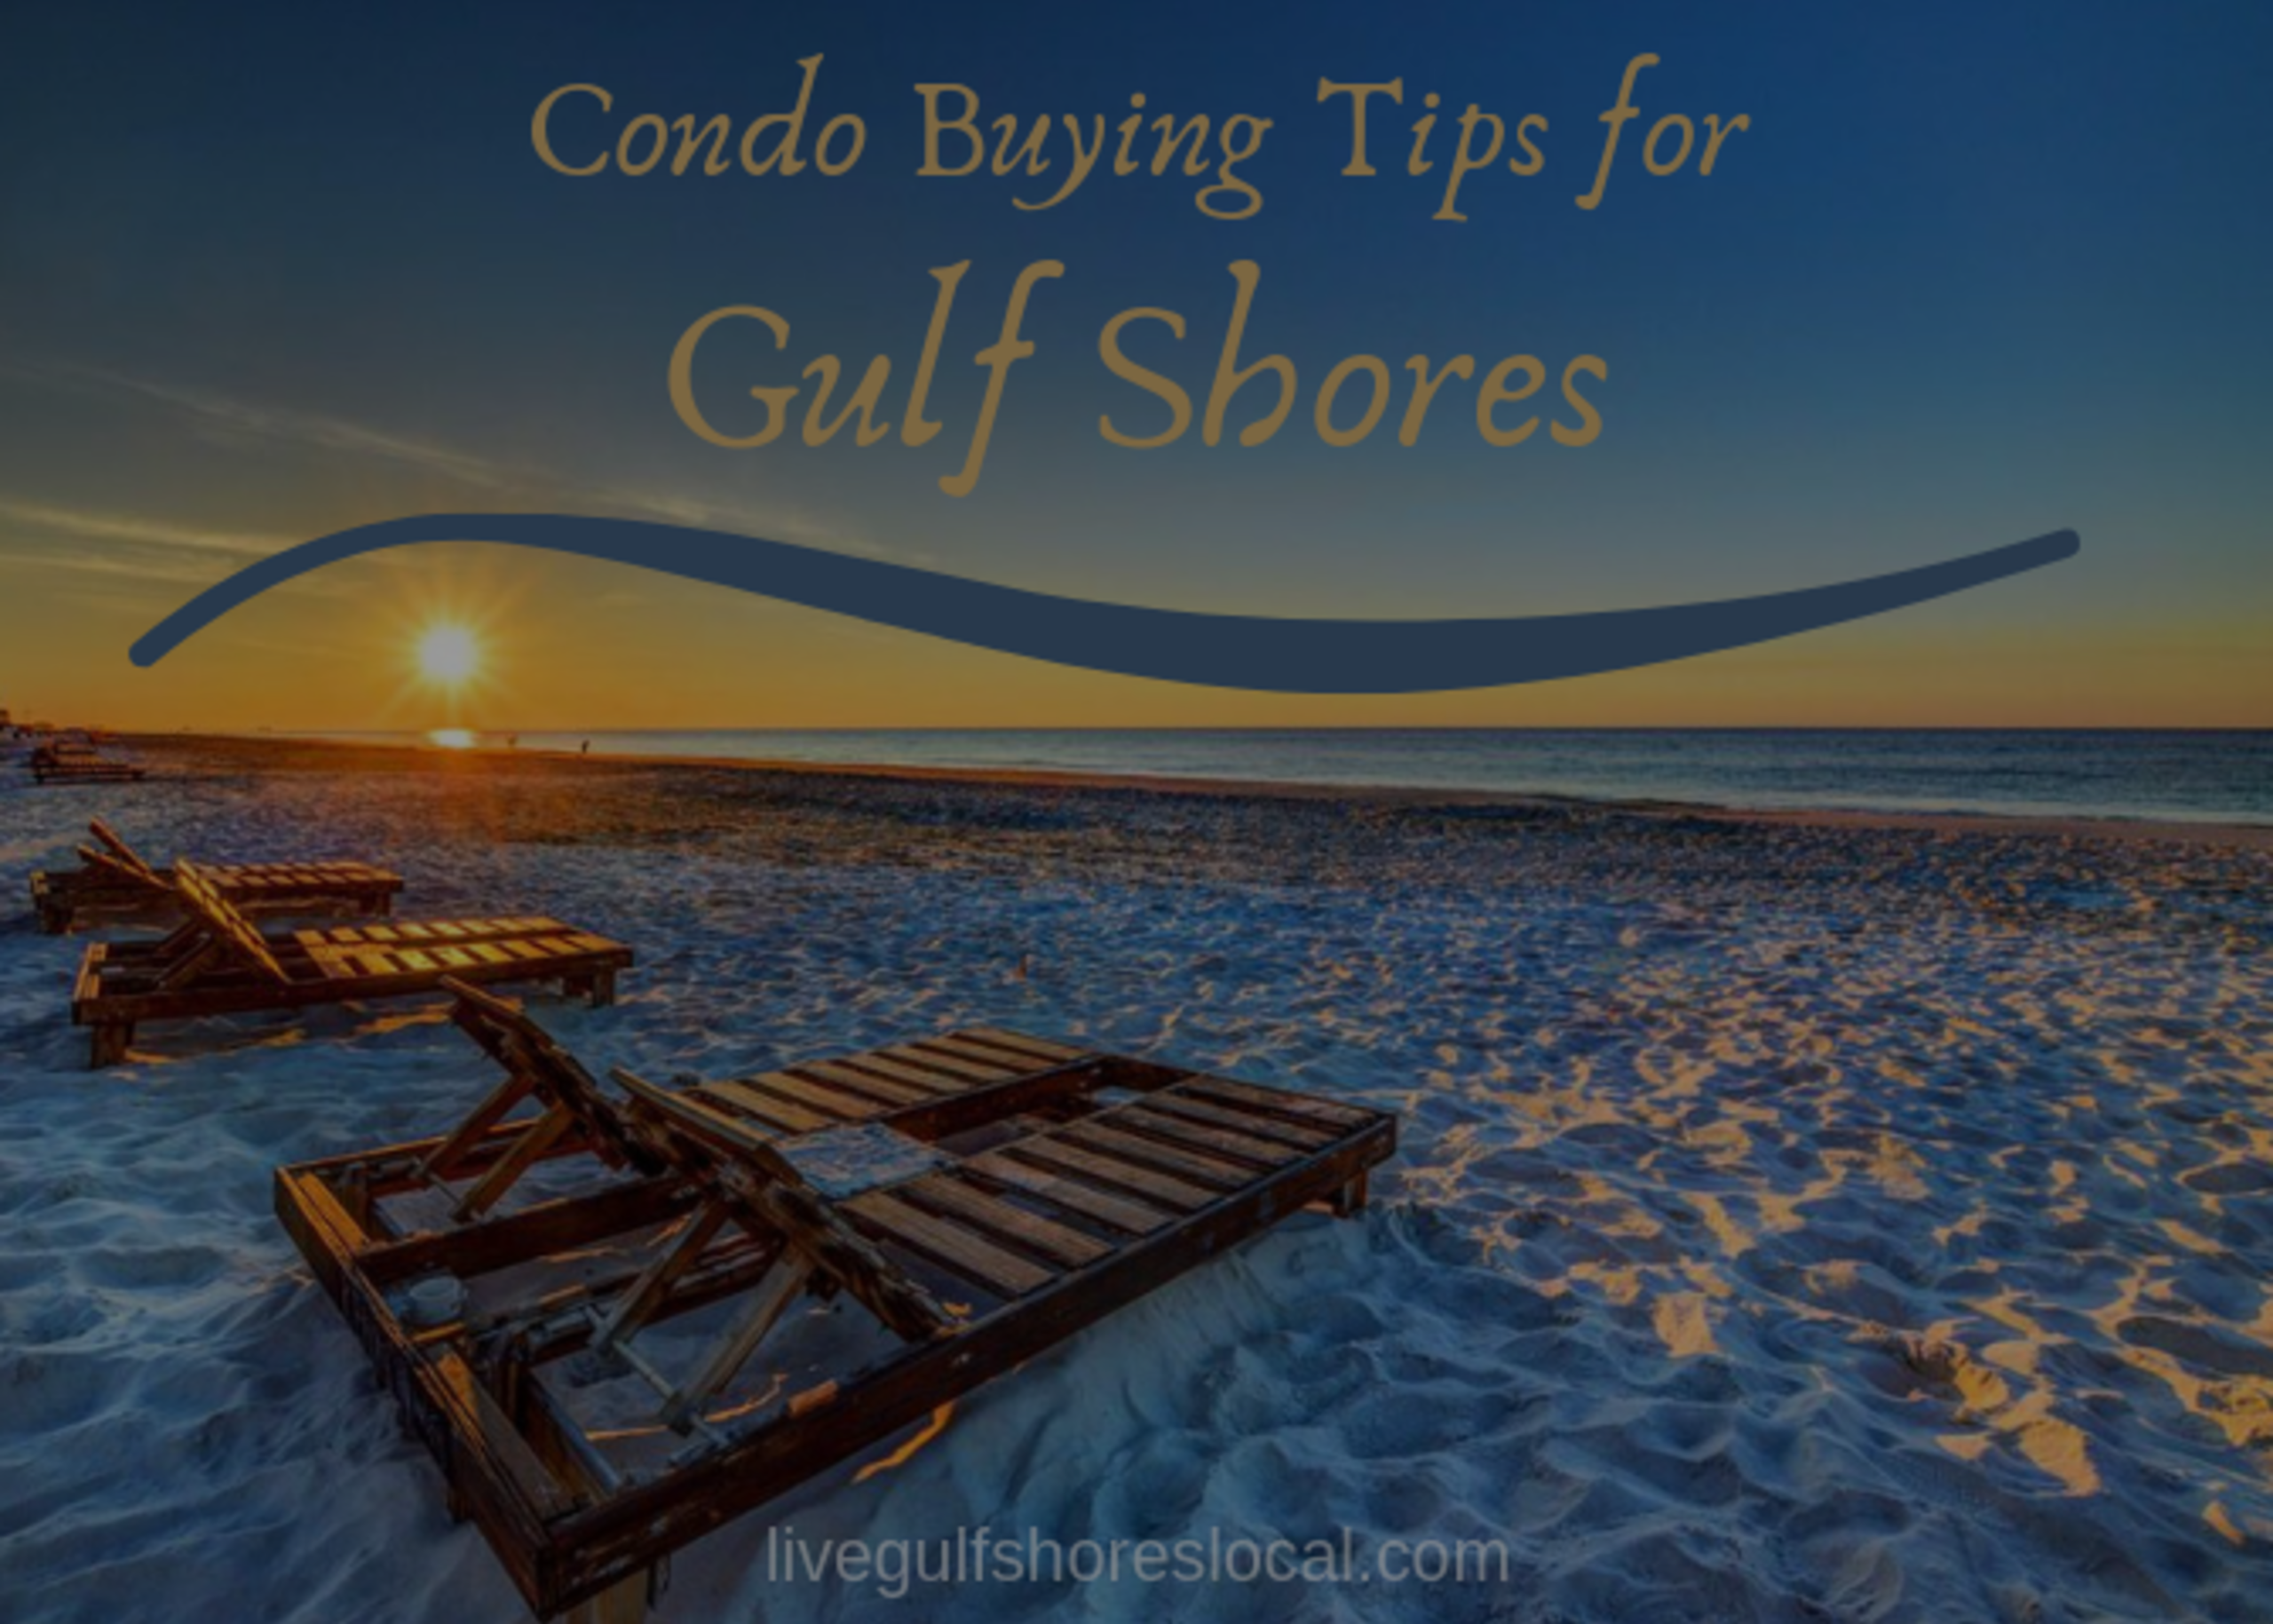 Condo Buying Tip #2 – The Right Location